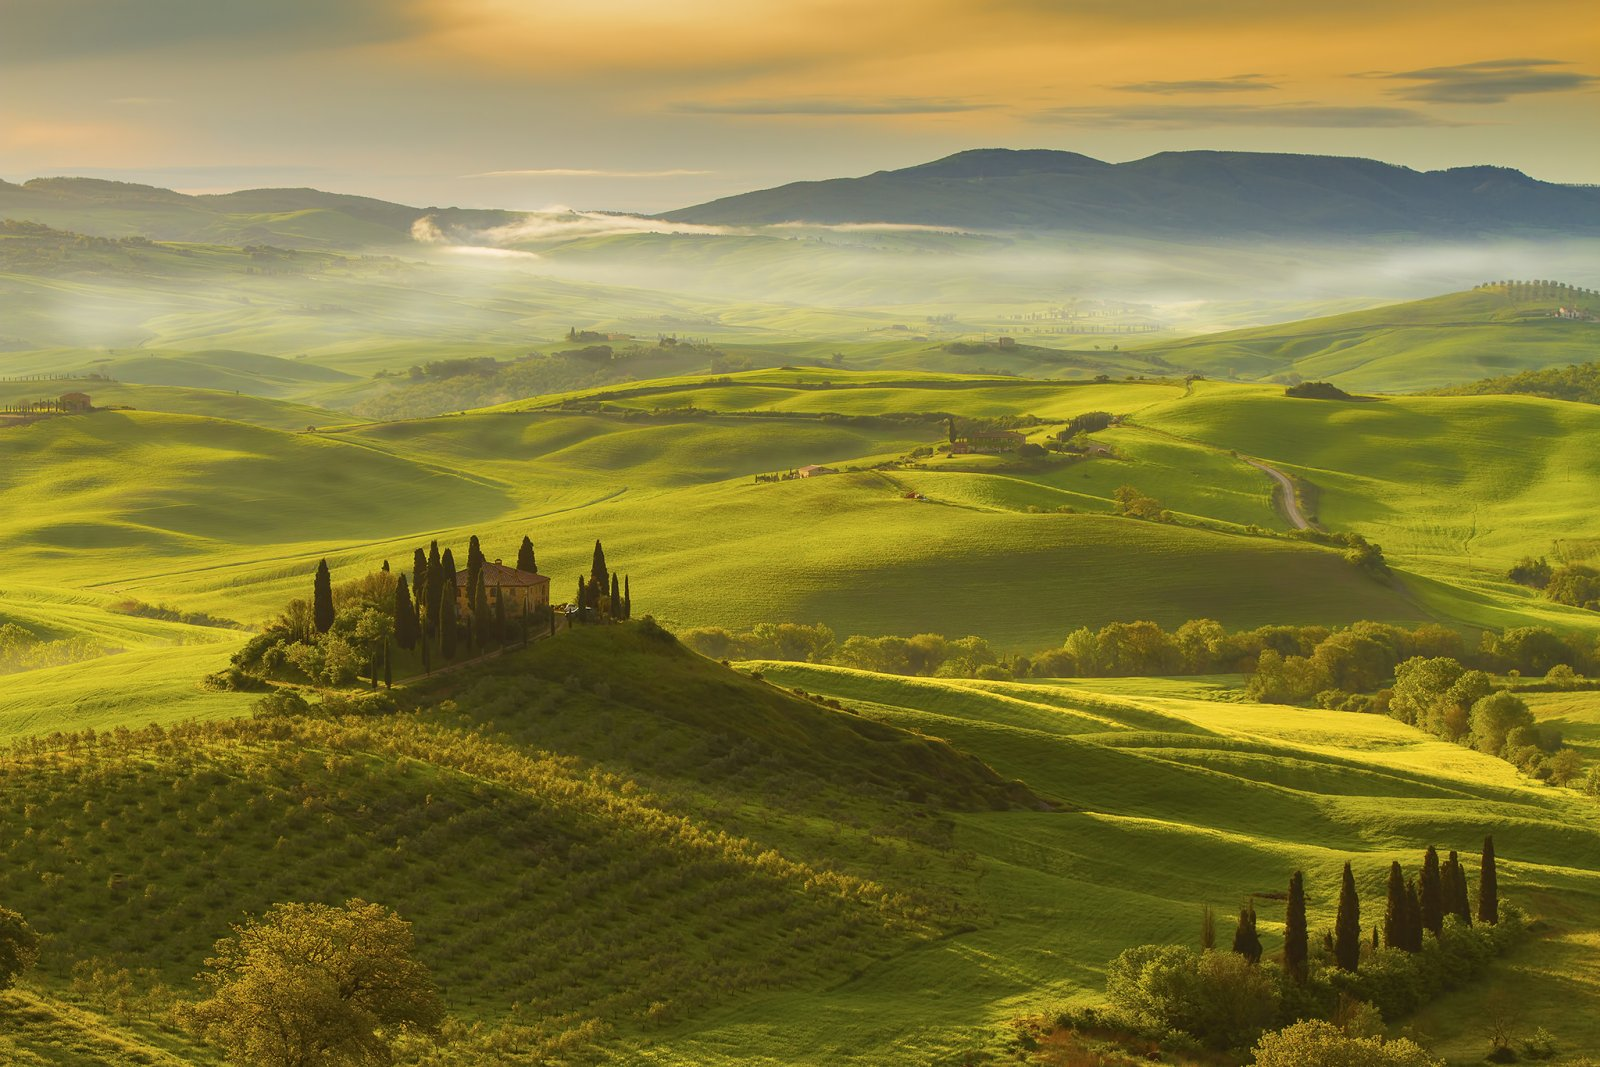 Val d'Orcia, mon amour